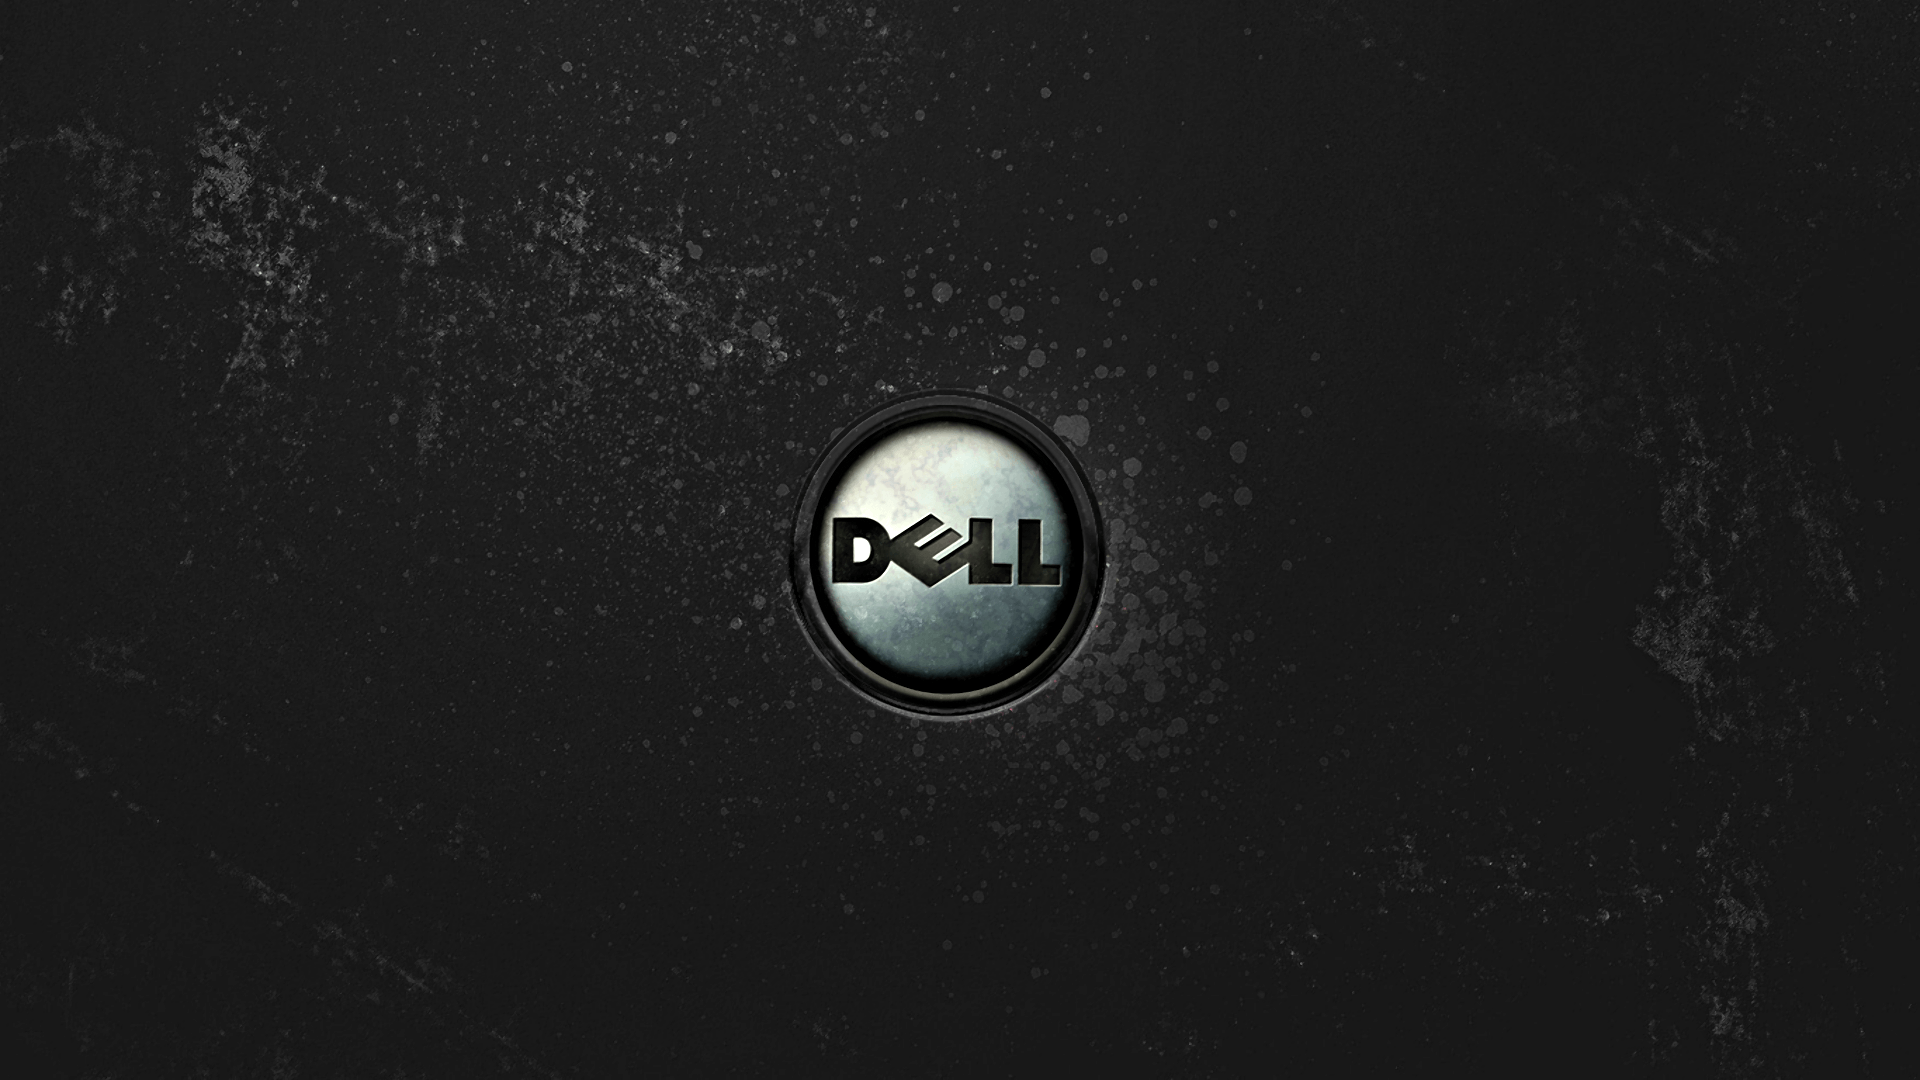 Dell HD Wallpapers - Top Free Dell HD Backgrounds